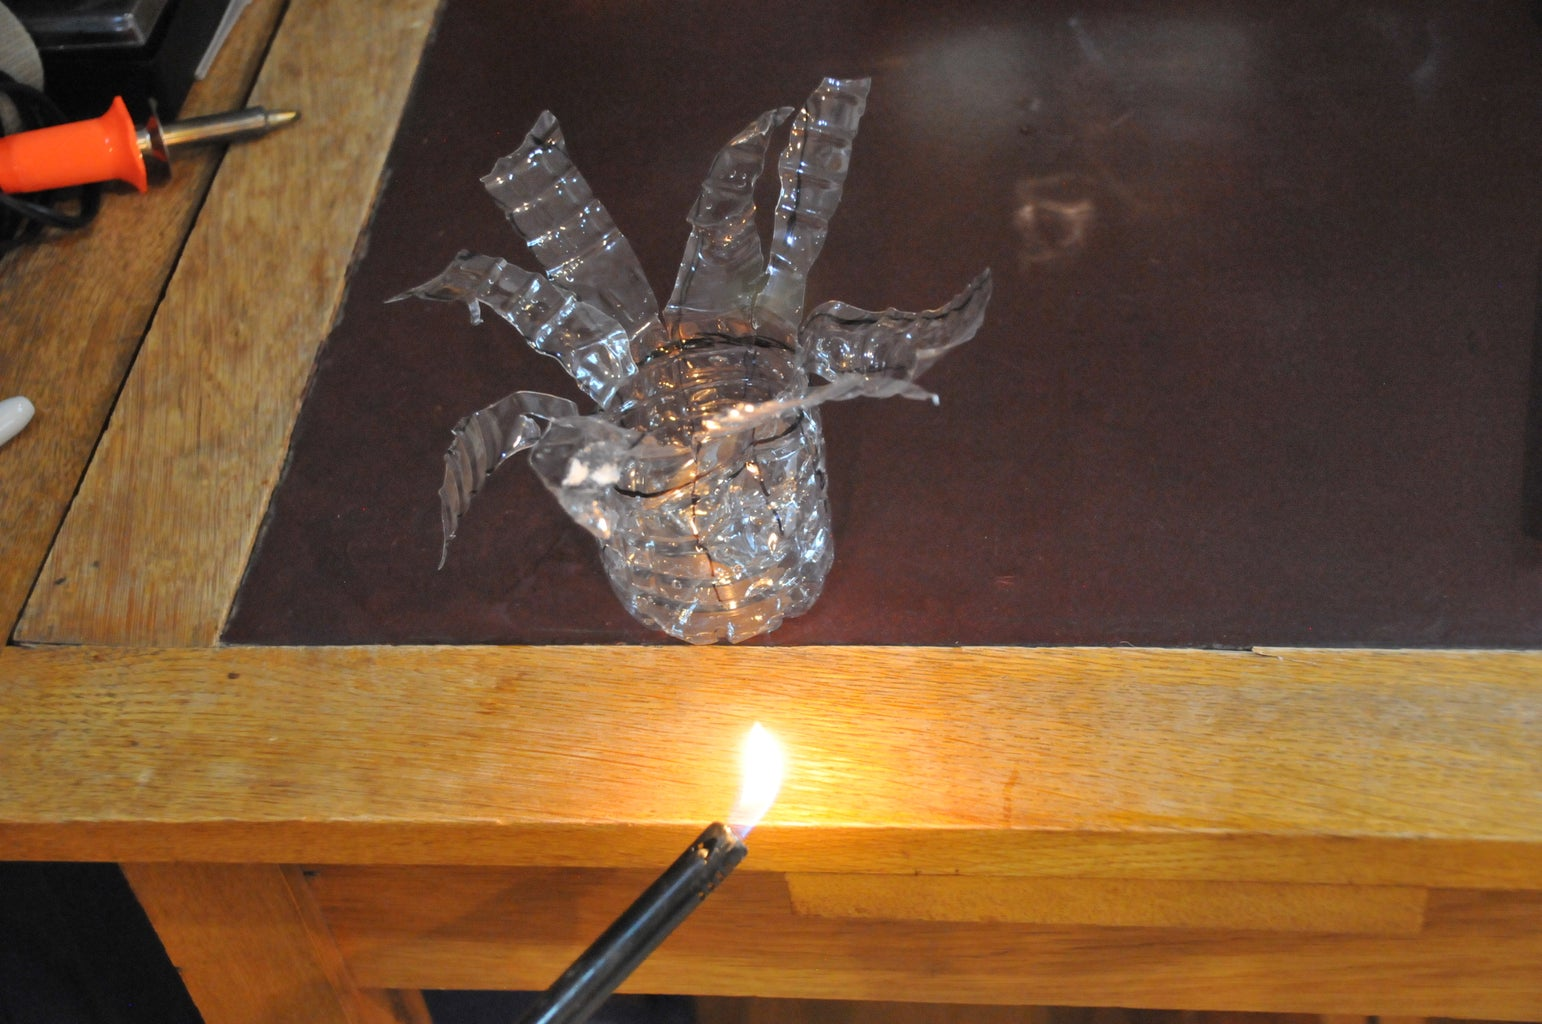 Step 3. If Your Flaps Won't Stay Down, Use a Lighter to Melt the Plastic So They Will Stay Down